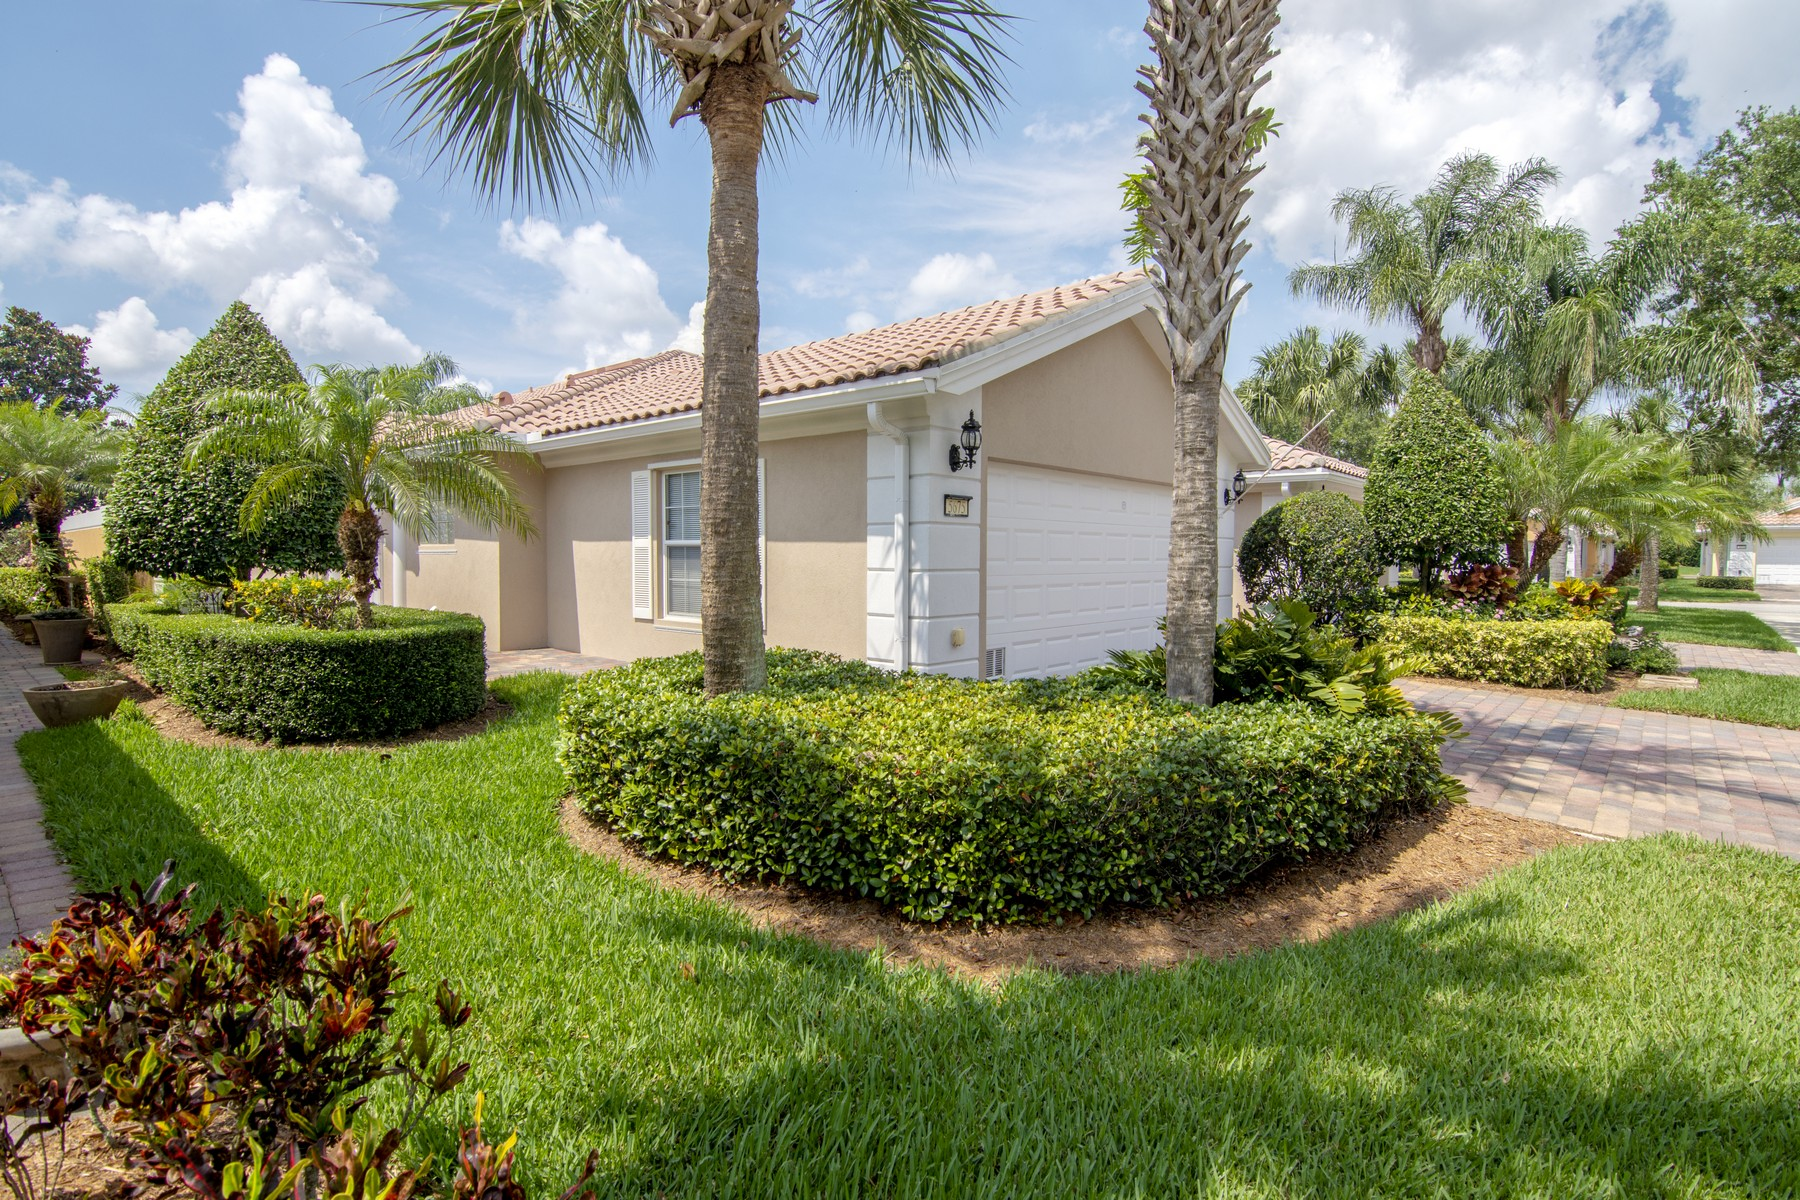 Single Family Home for Sale at You Can Have It All 5675 Dominica St Vero Beach, Florida 32967 United States